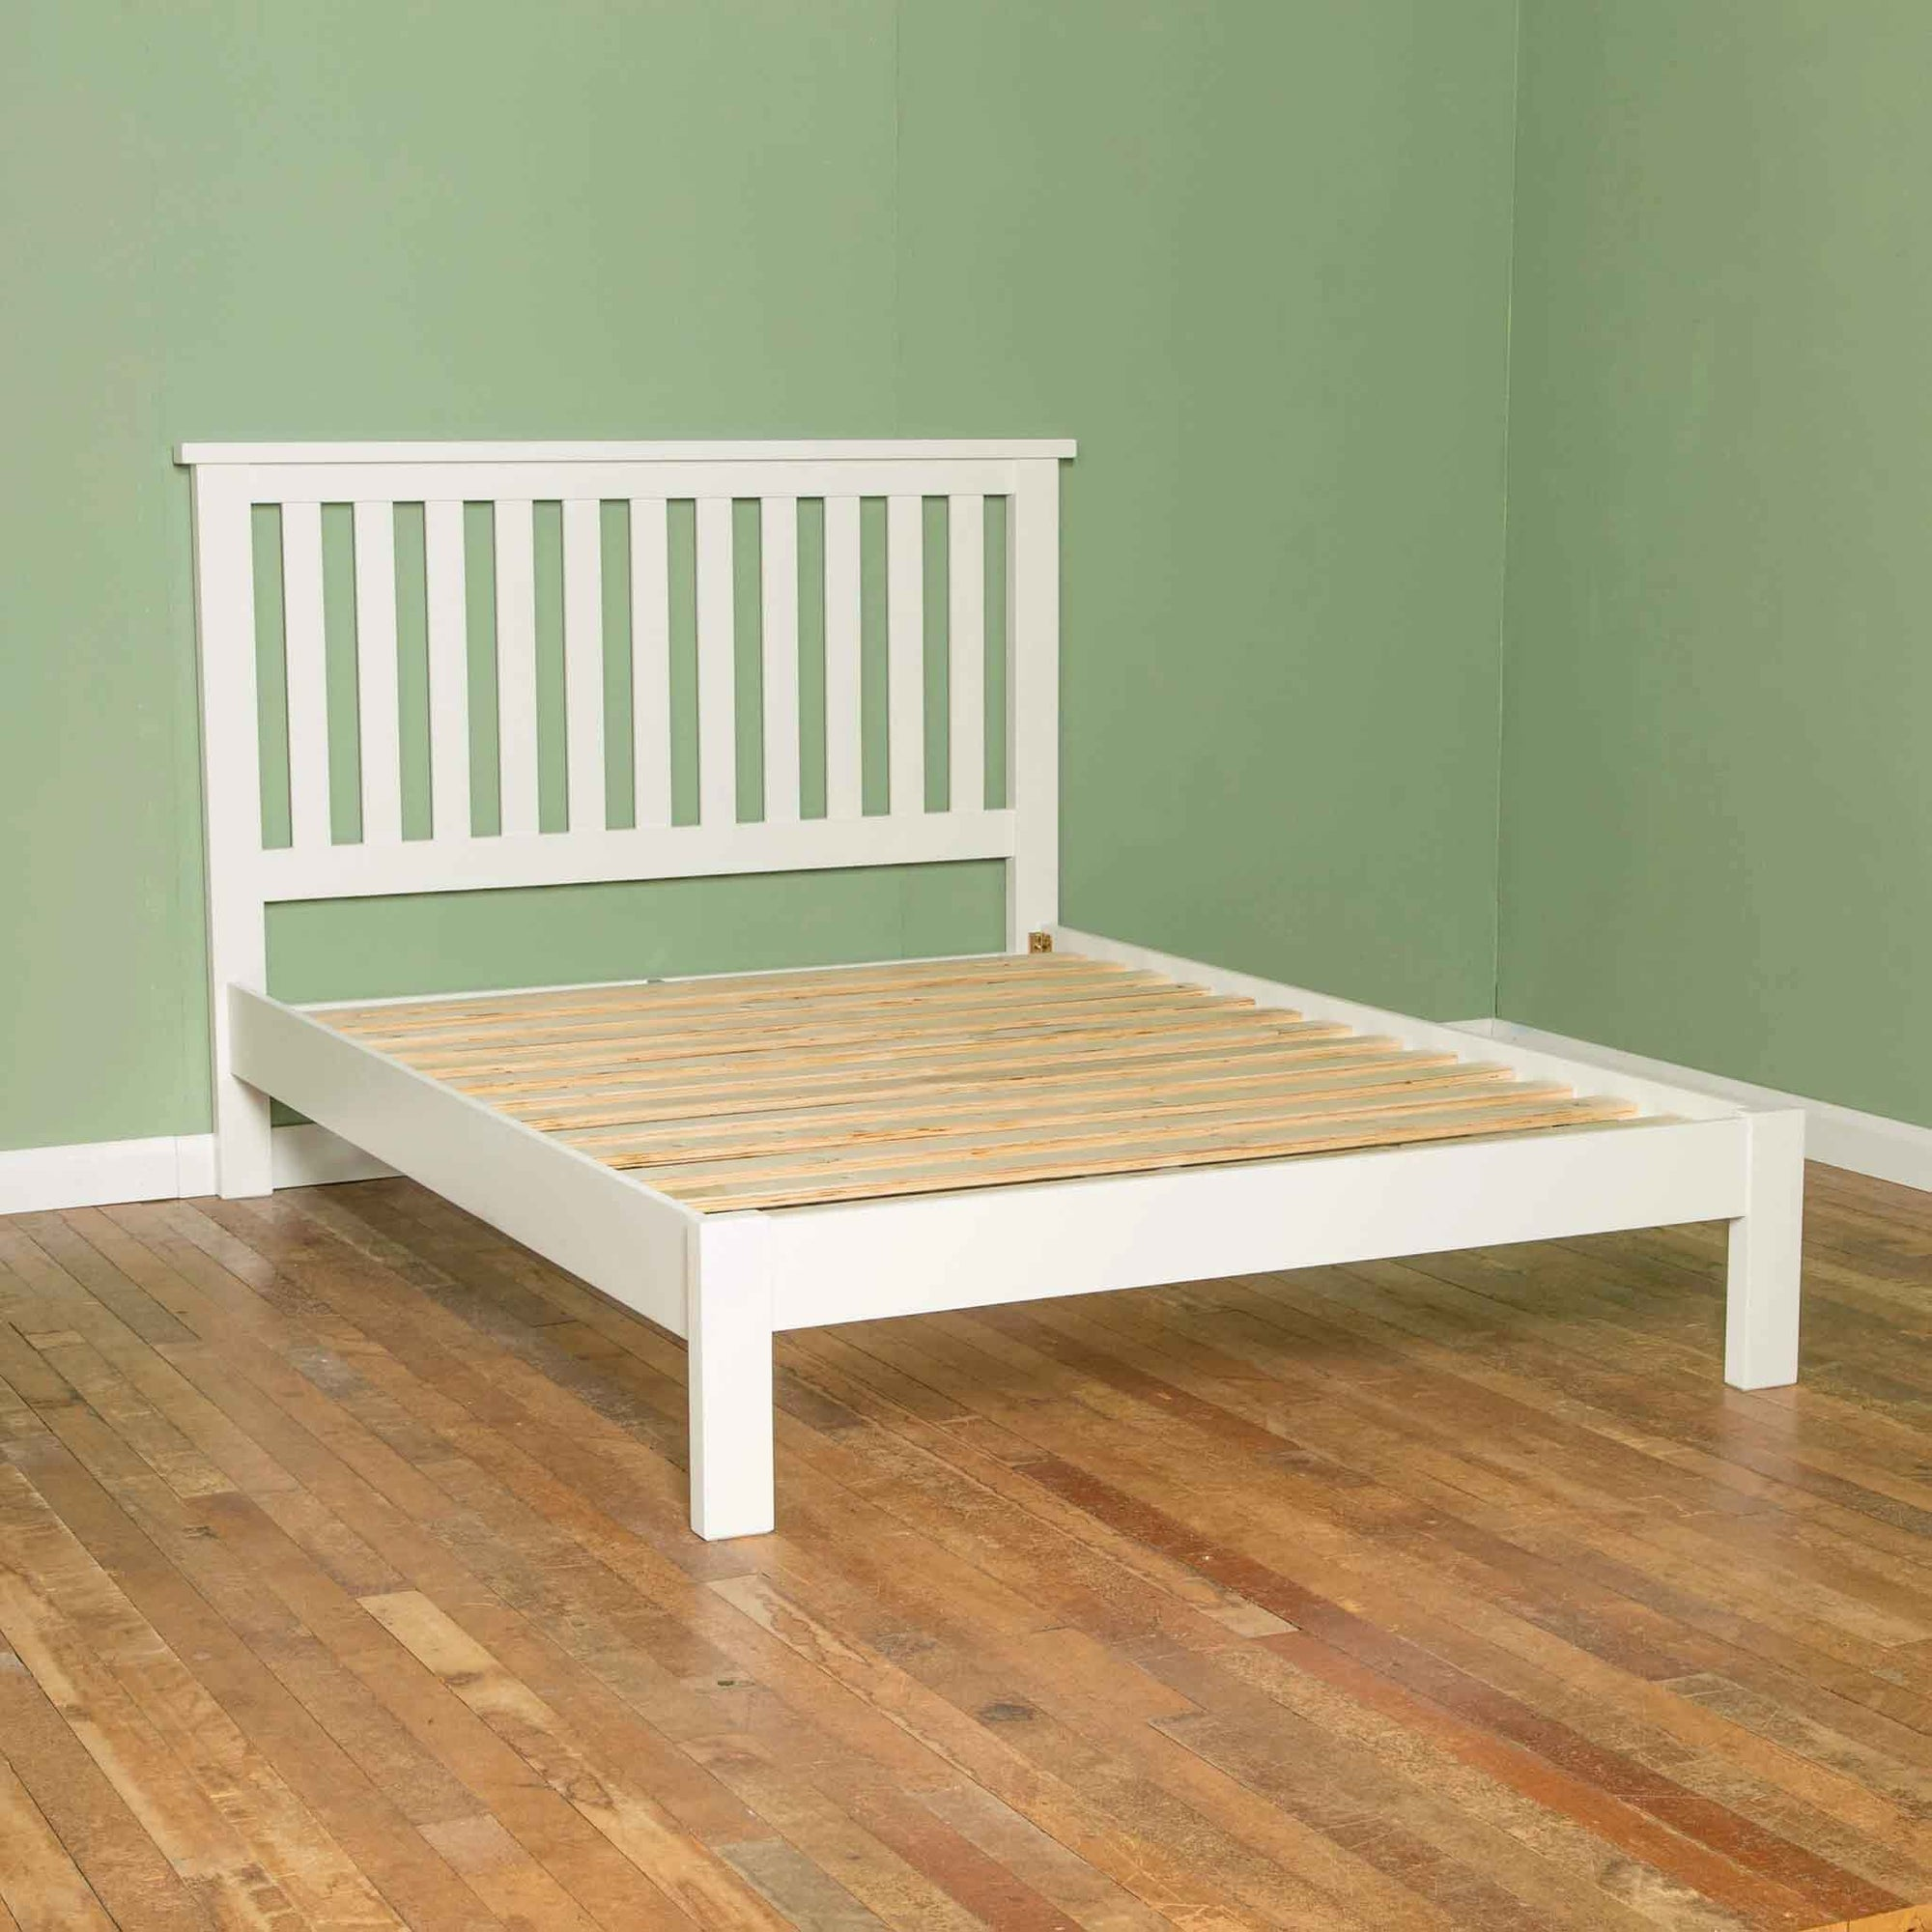 The Cornish White Large 5 ft King Size Wooden Bed Frame from Roseland Furniture